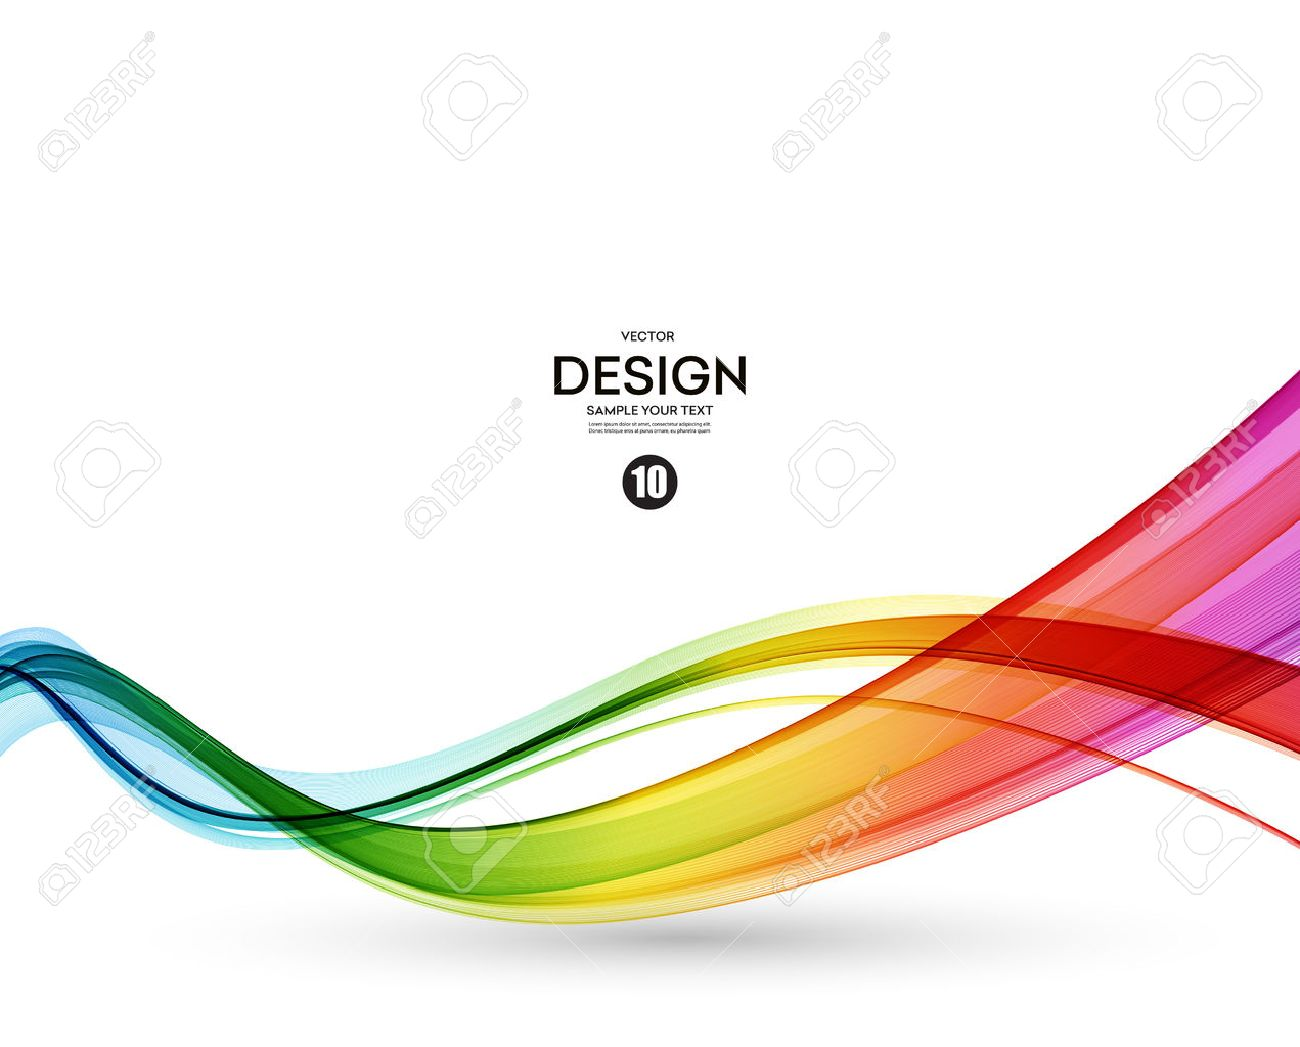 Abstract wave vector background, rainbow waved lines. - 53407910